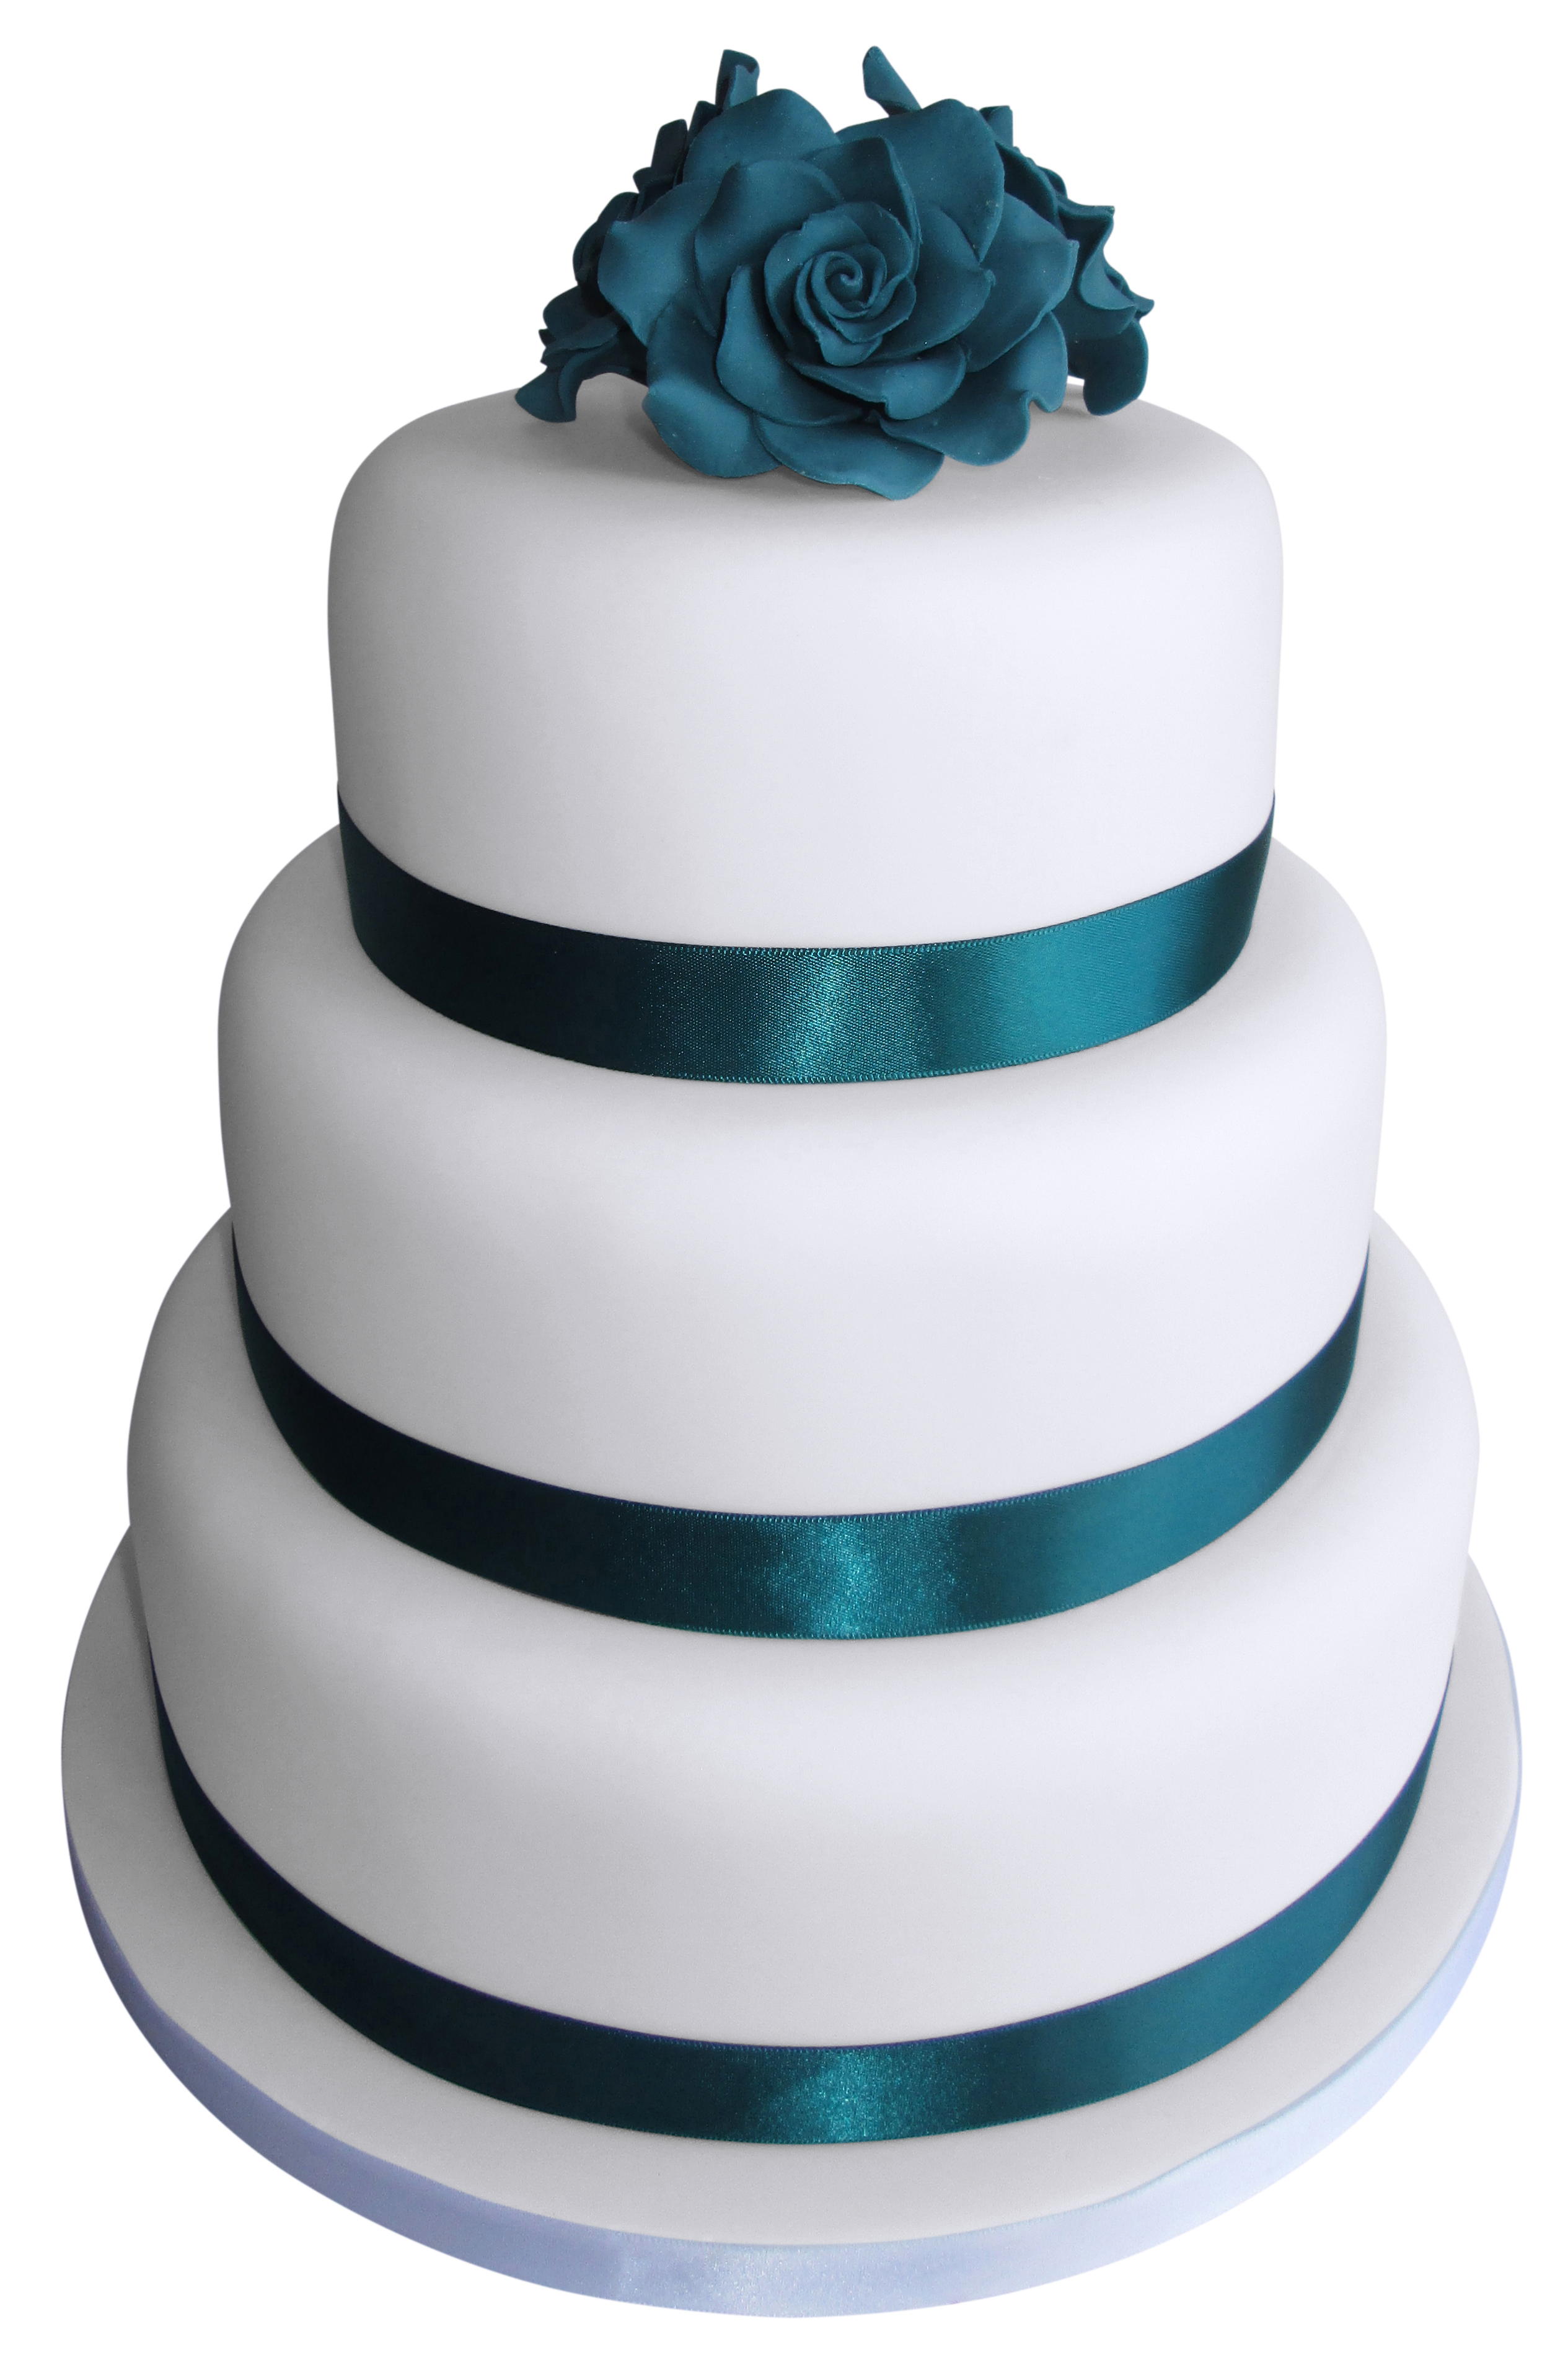 Welcome To Classic Cakes Classic Cakes Com For All